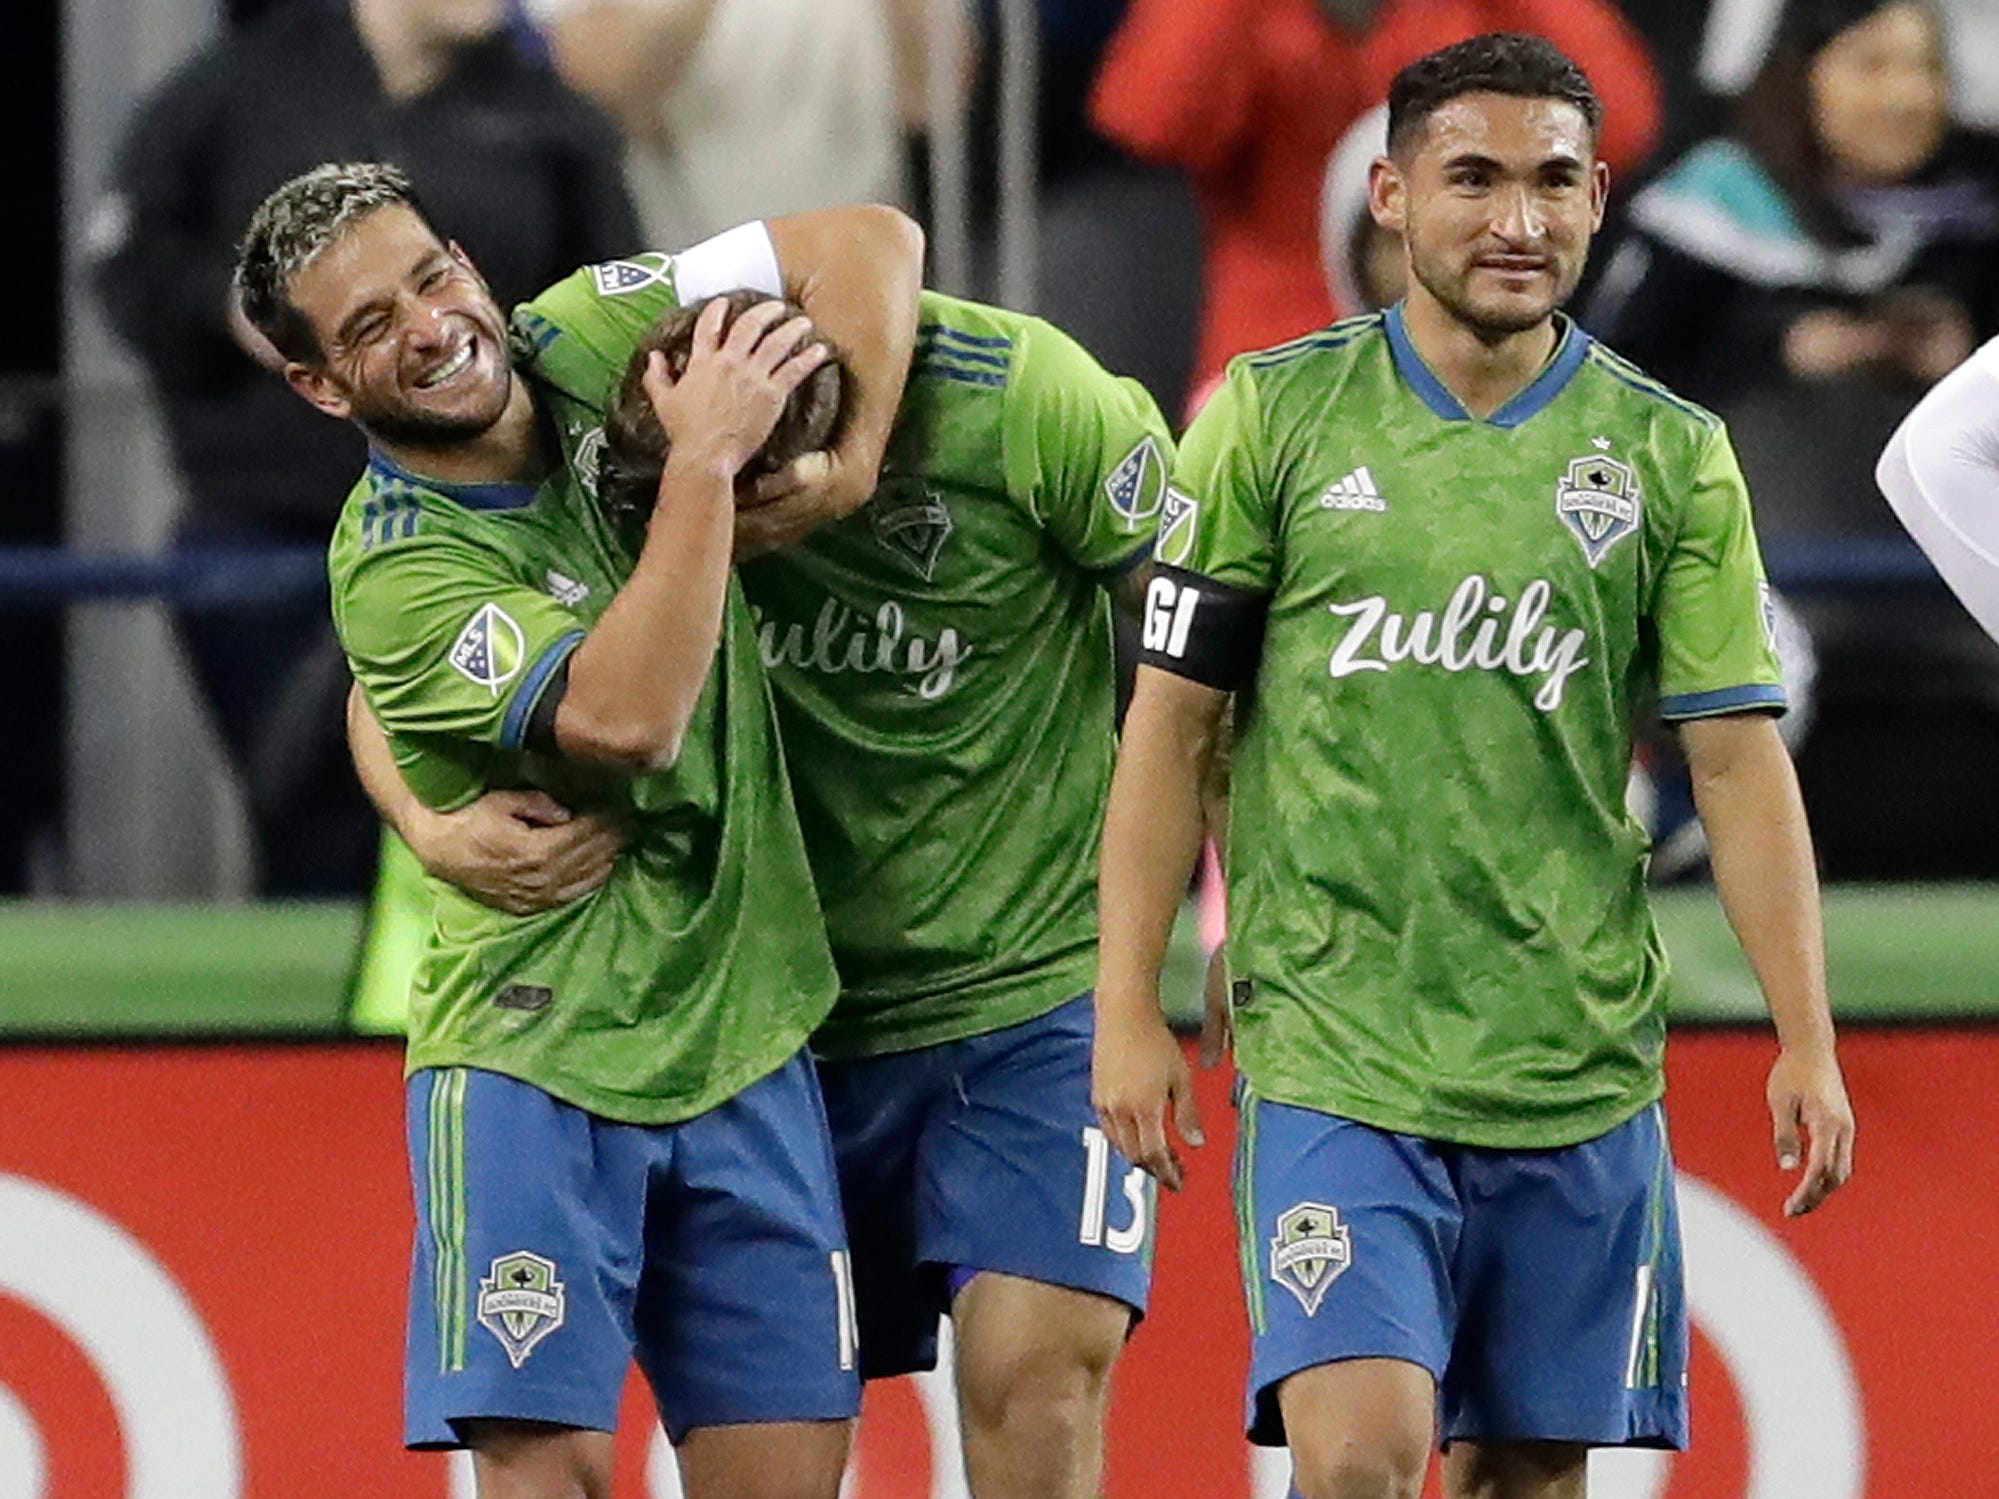 Seattle Sounders forward Jordan Morris (center) is hugged by teammate Nicolas Lodeiro as they walk with Cristian Roldan after Morris scored the first of his two goals in a 4-1 win against FC Cincinnati.